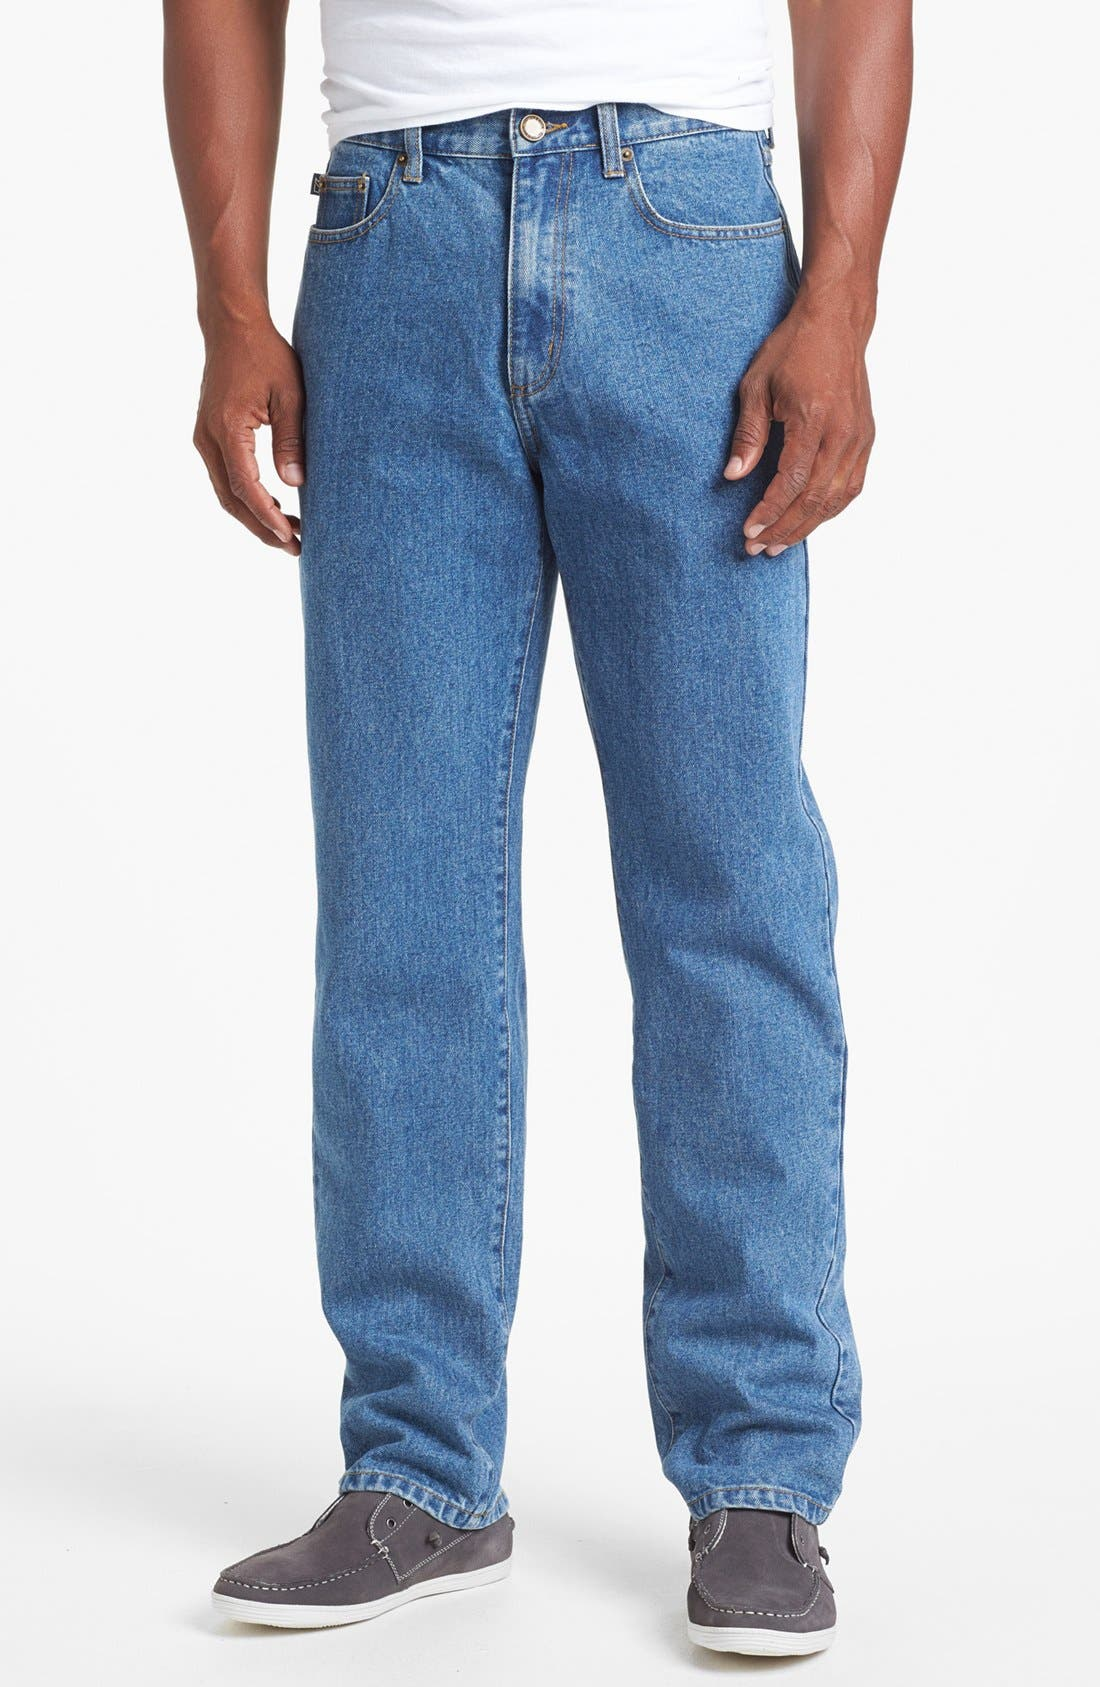 Alternate Image 1 Selected - Cutter & Buck Classic Five Pocket Straight Leg Jeans (Denim Wash)